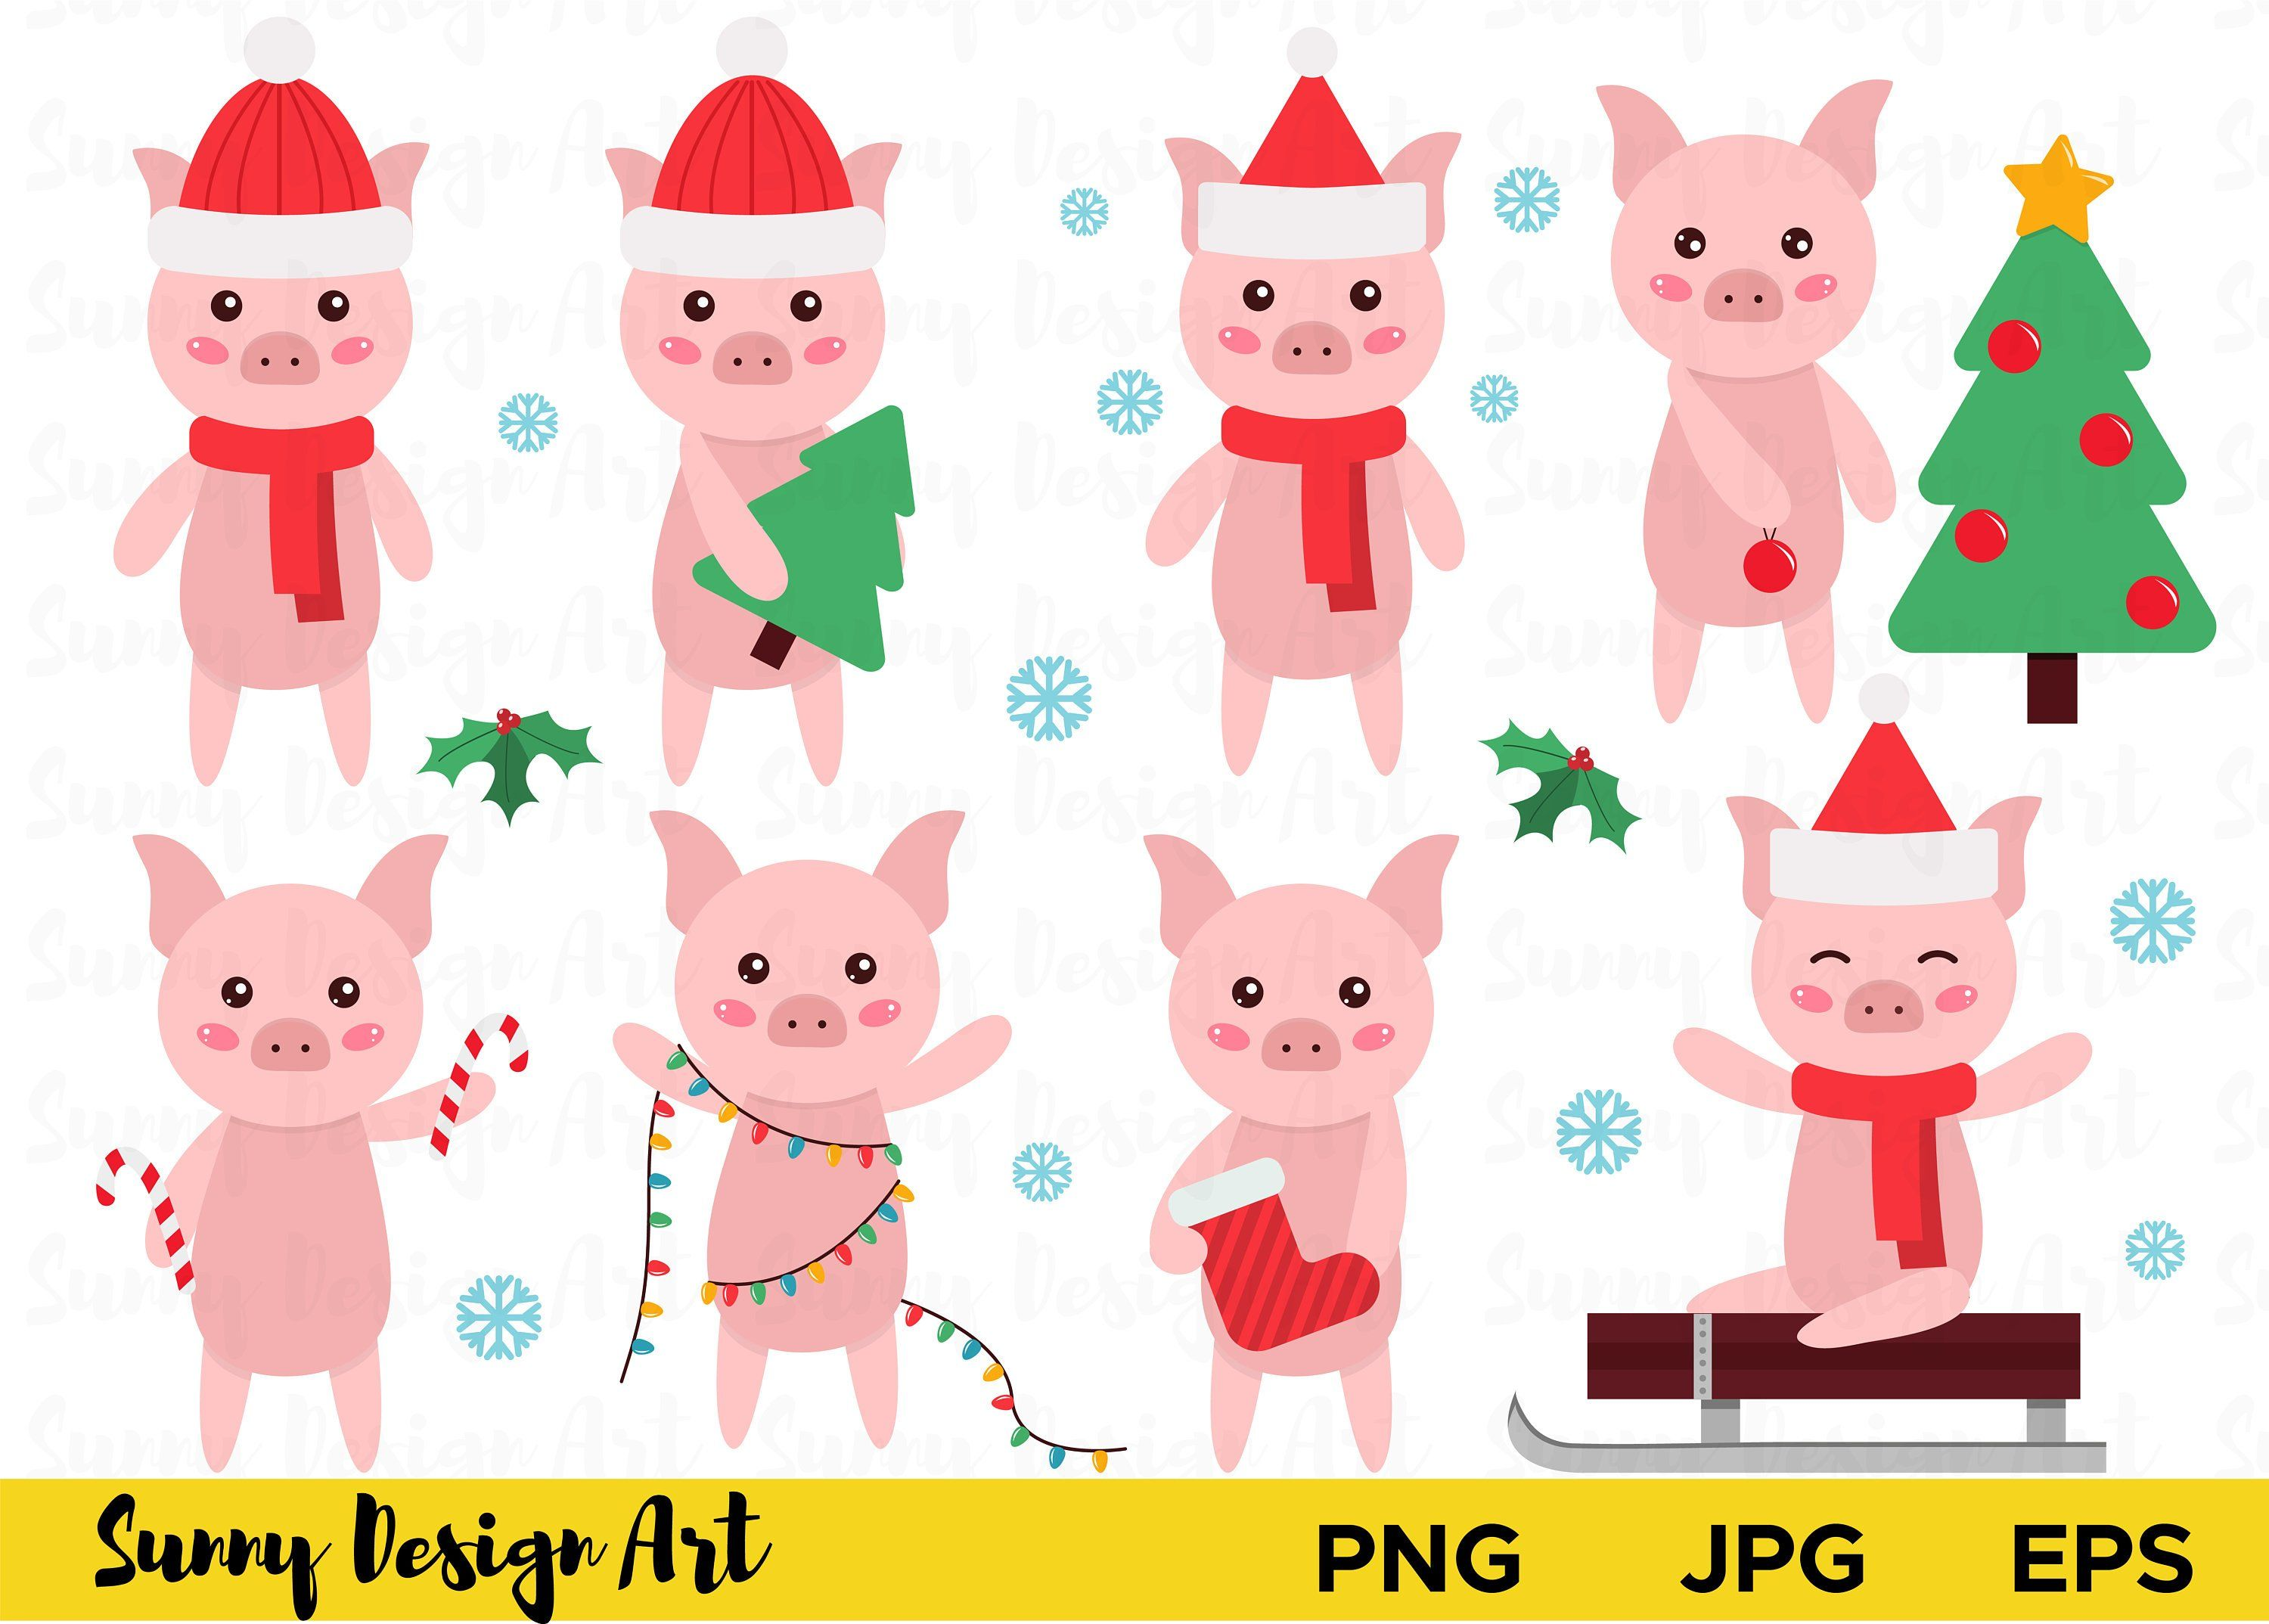 medium resolution of cute pigs clipart new year 2019 symbol pig christmas